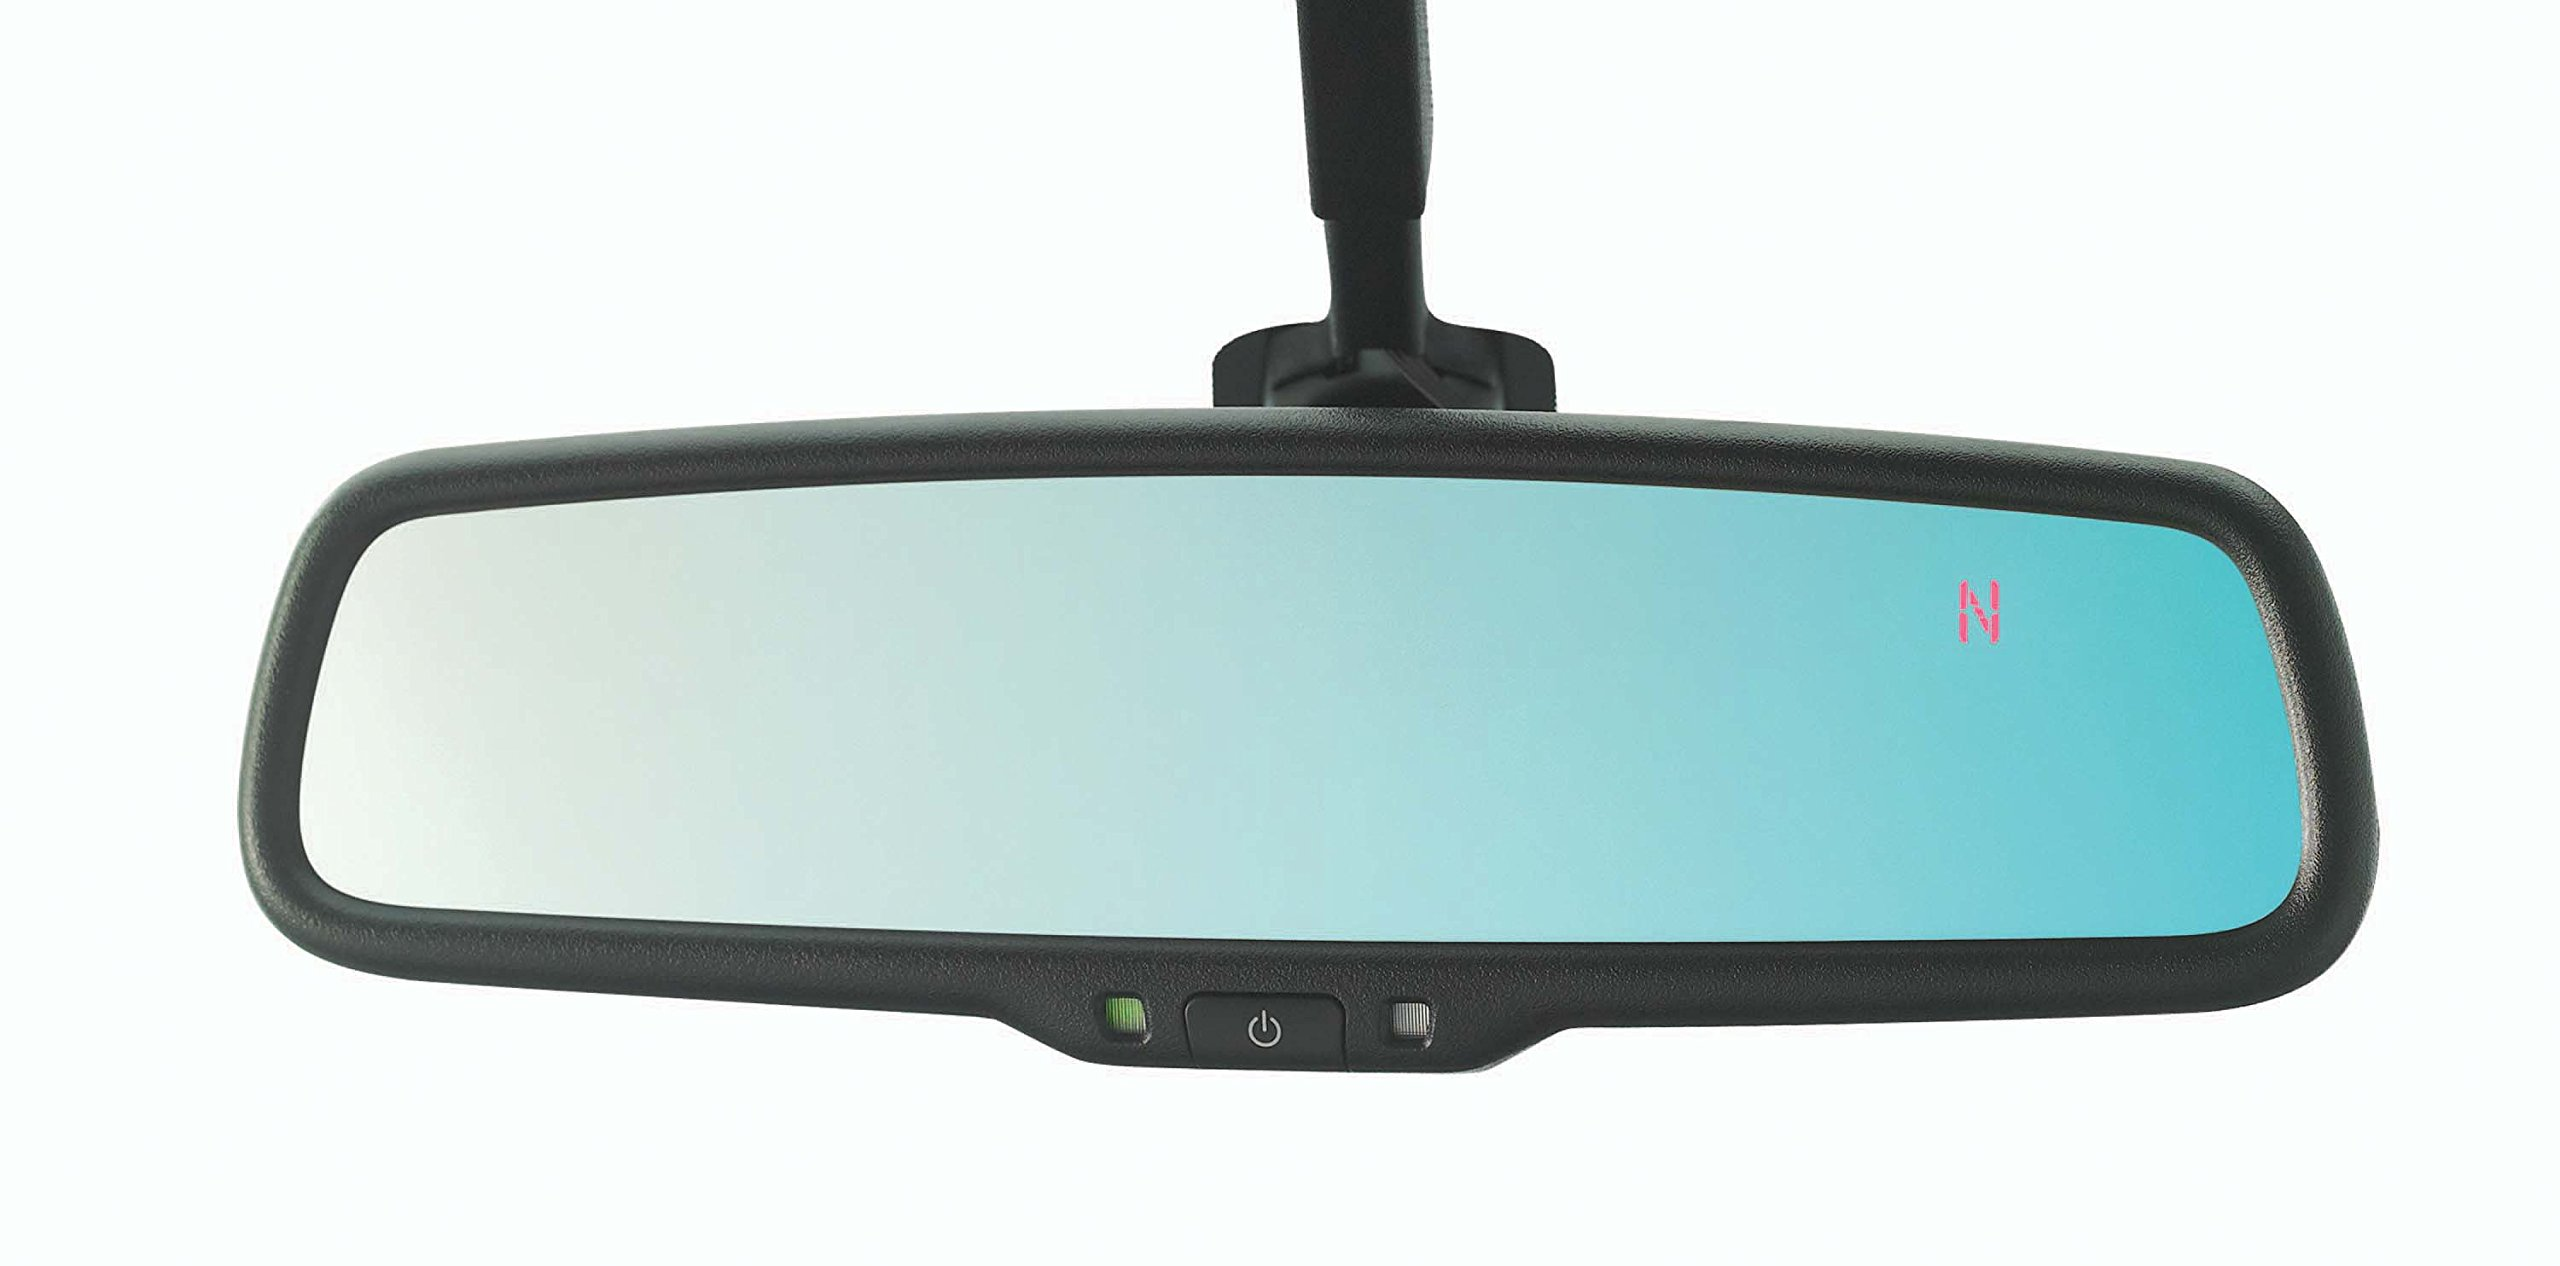 SUBARU Genuine H501SSG000 Auto-Dimming Mirror Compass